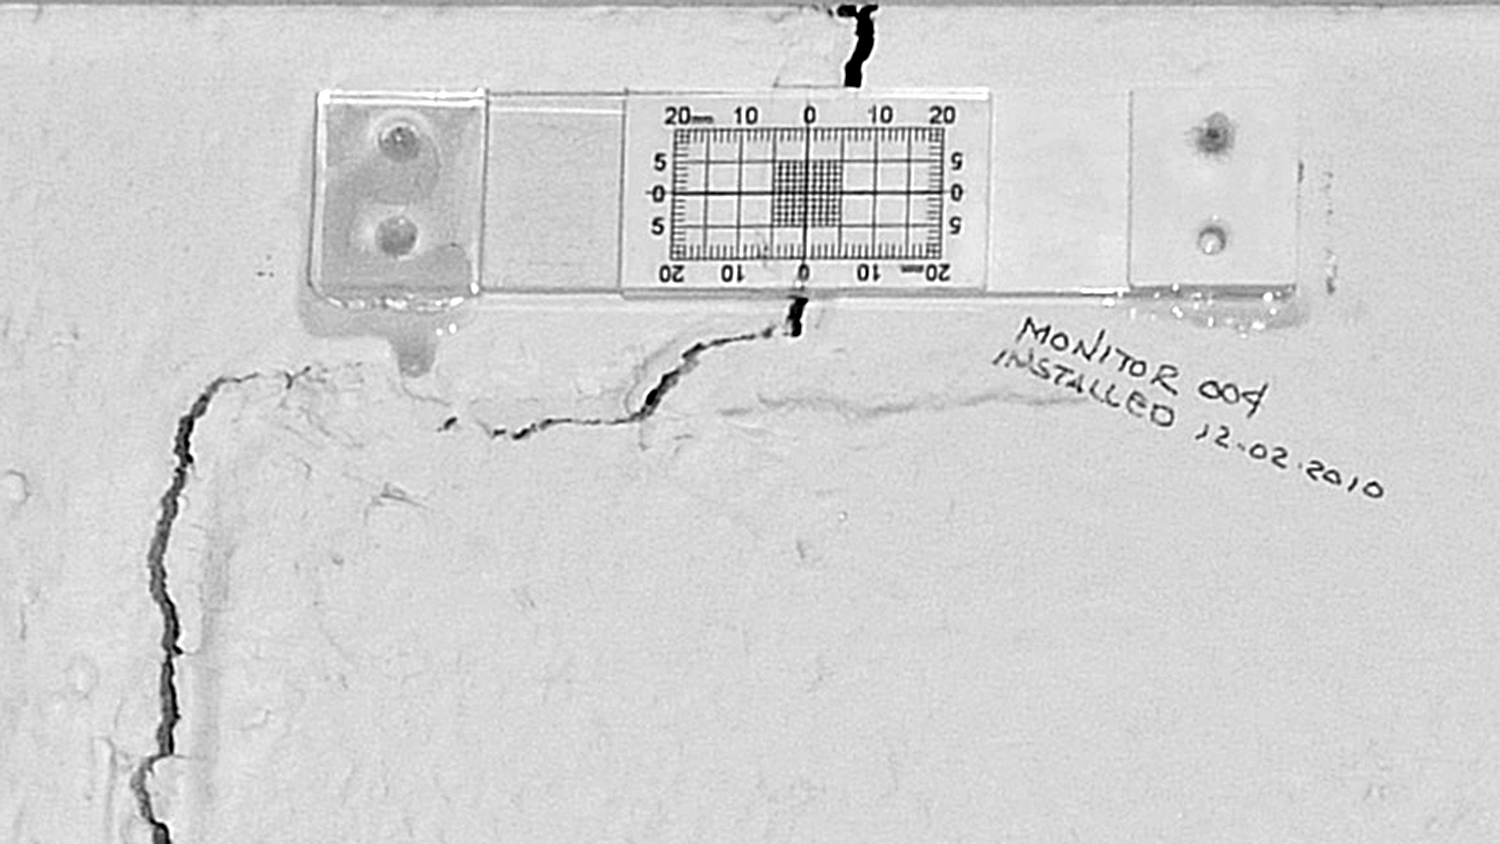 Figure 15. Crack monitor measures wall crack. Photo Credit: Wolfram